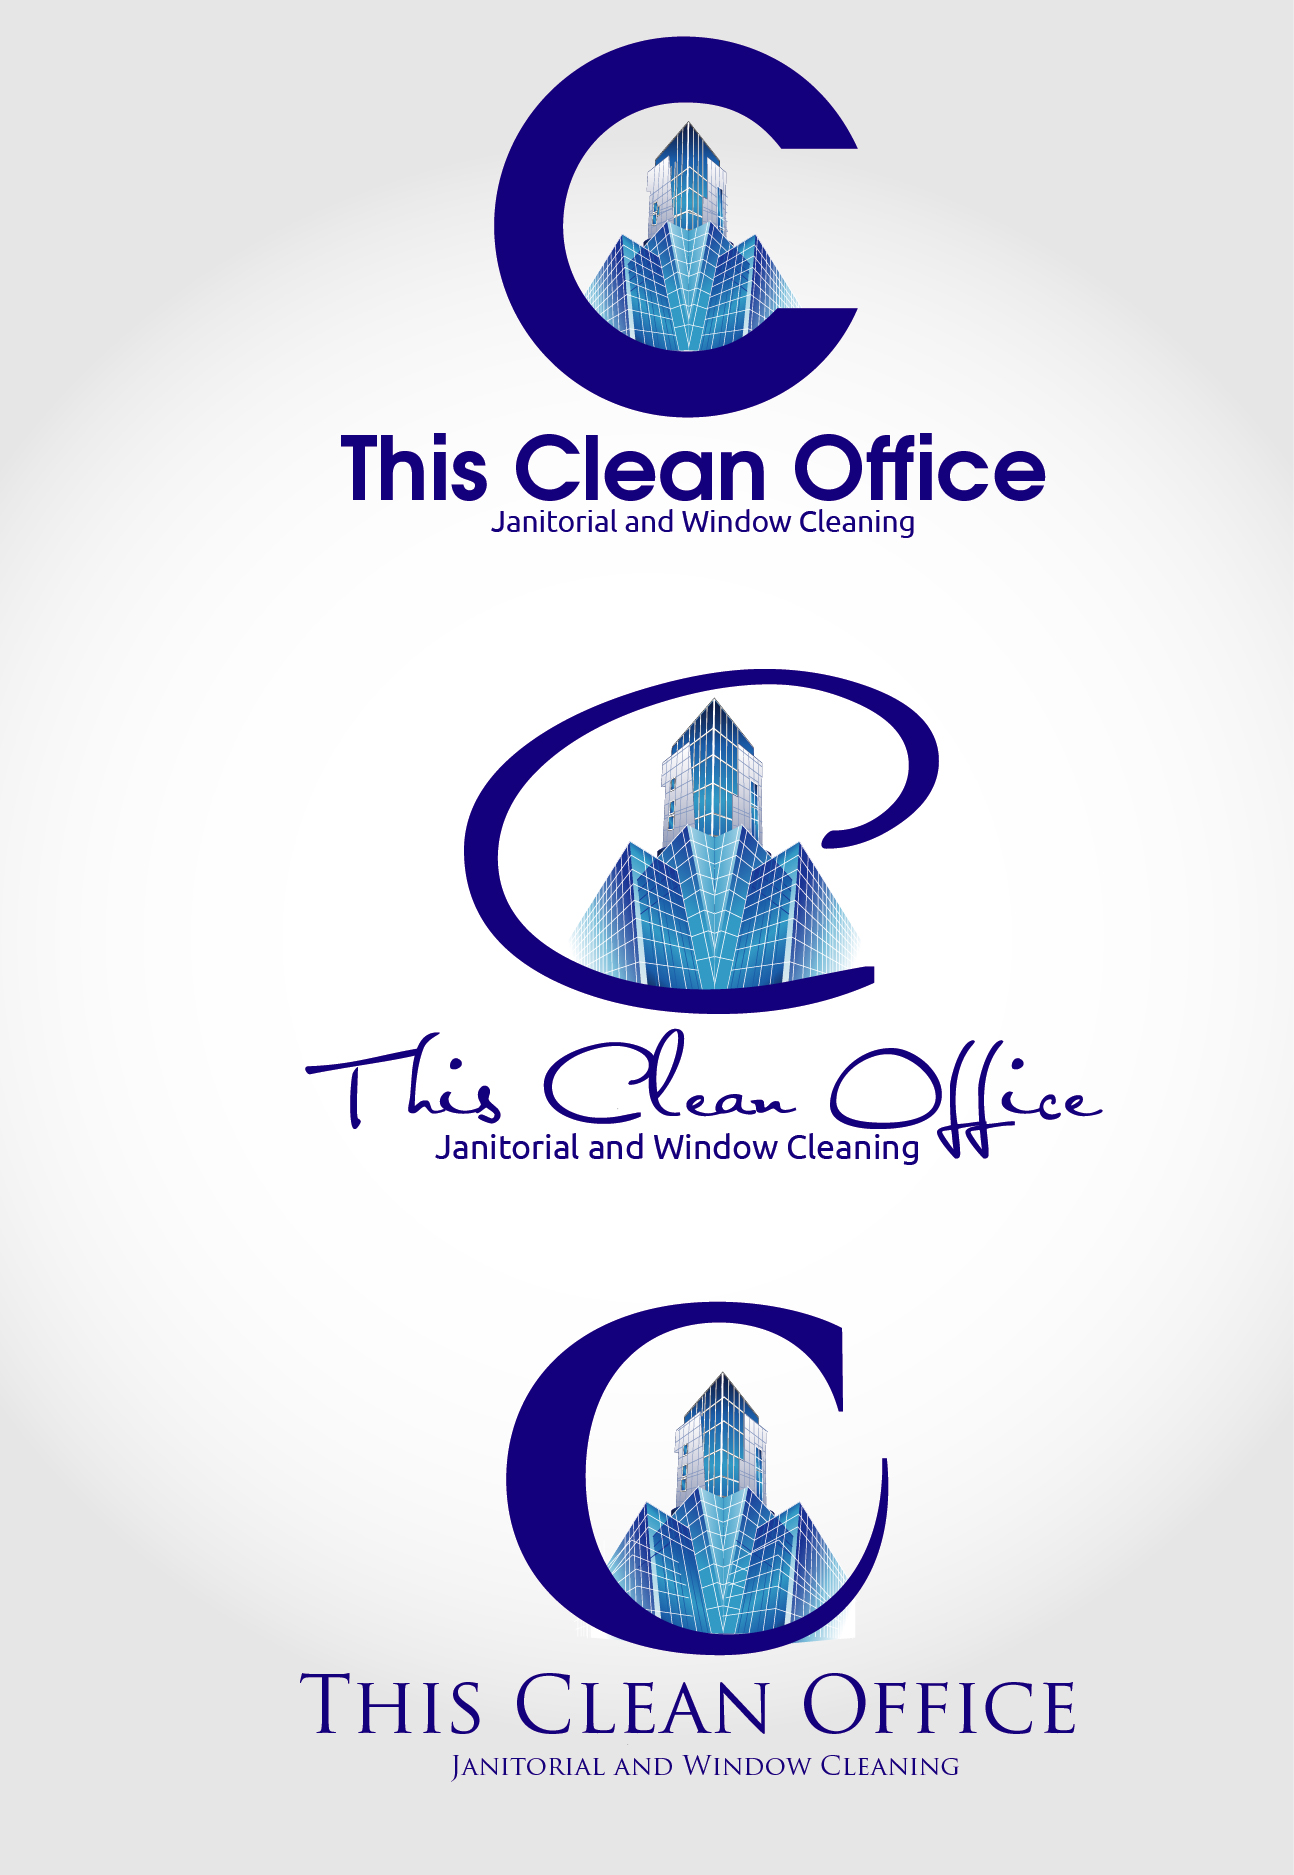 Logo Design by VENTSISLAV KOVACHEV - Entry No. 33 in the Logo Design Contest Professional and Unforgettable Logo Design for This Clean Office.